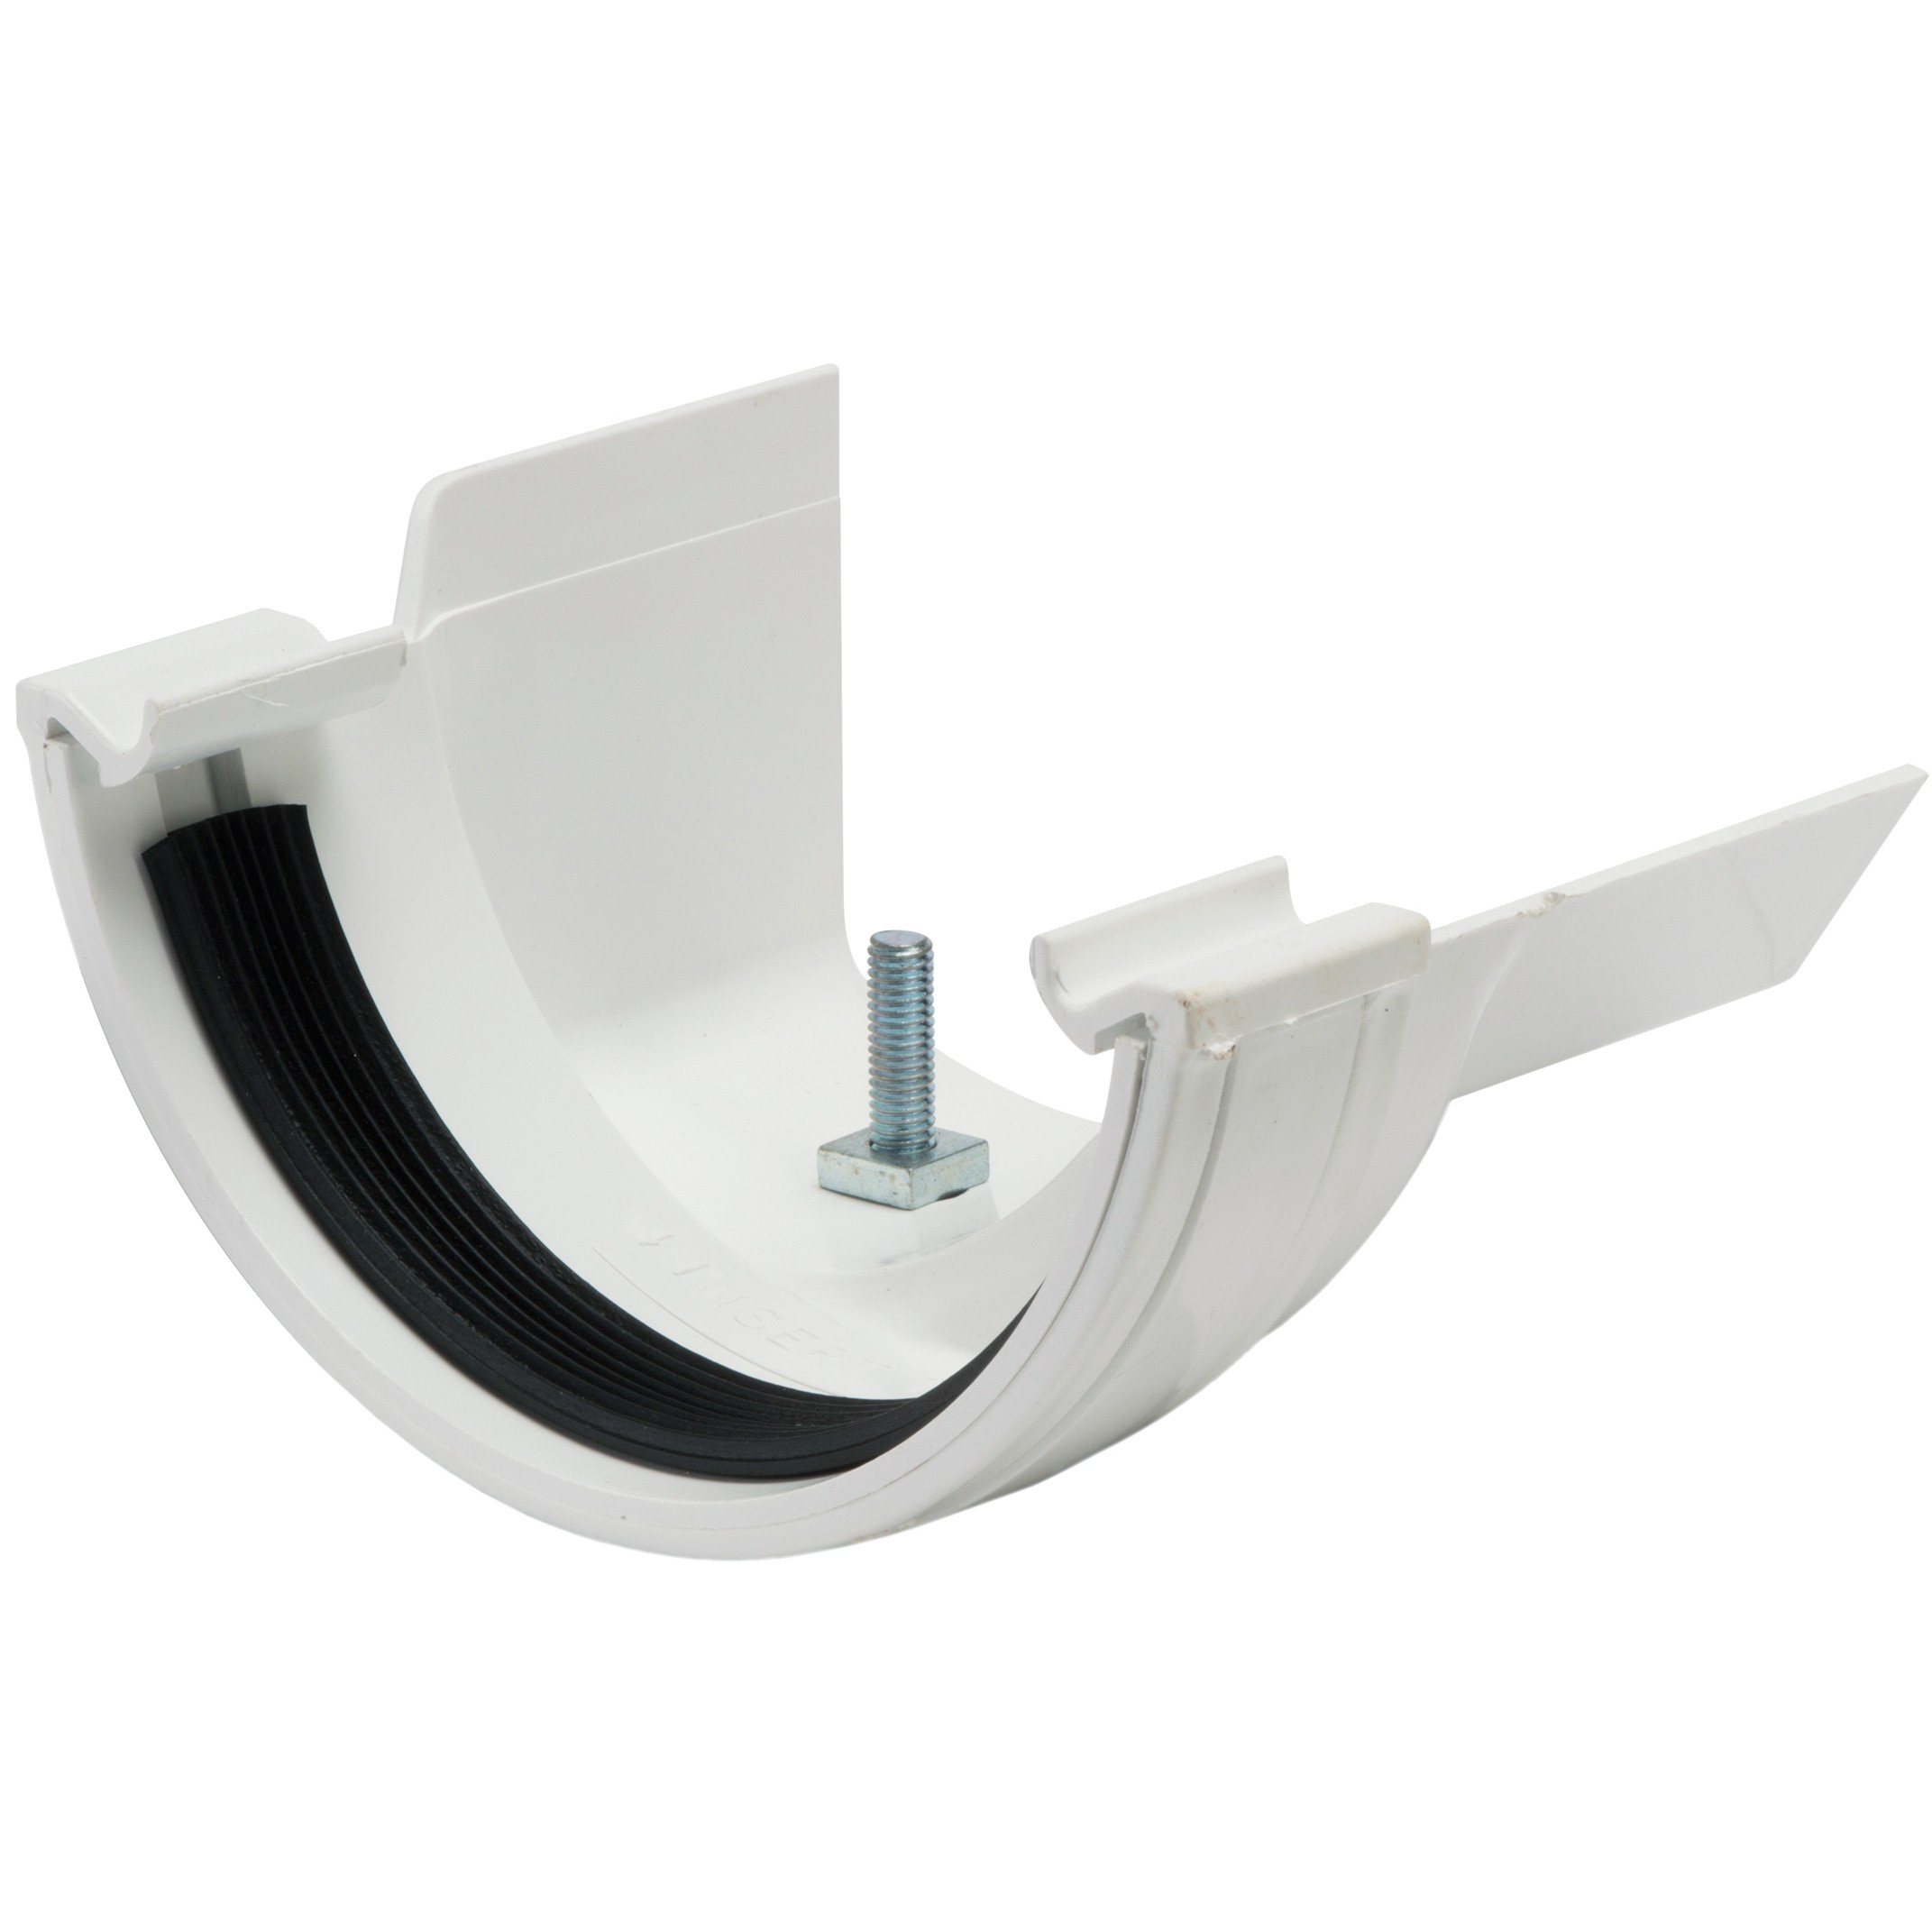 Polypipe 112mm Half Round to Metal 130mm Ogee Gutter Adaptor (Right Hand) - White